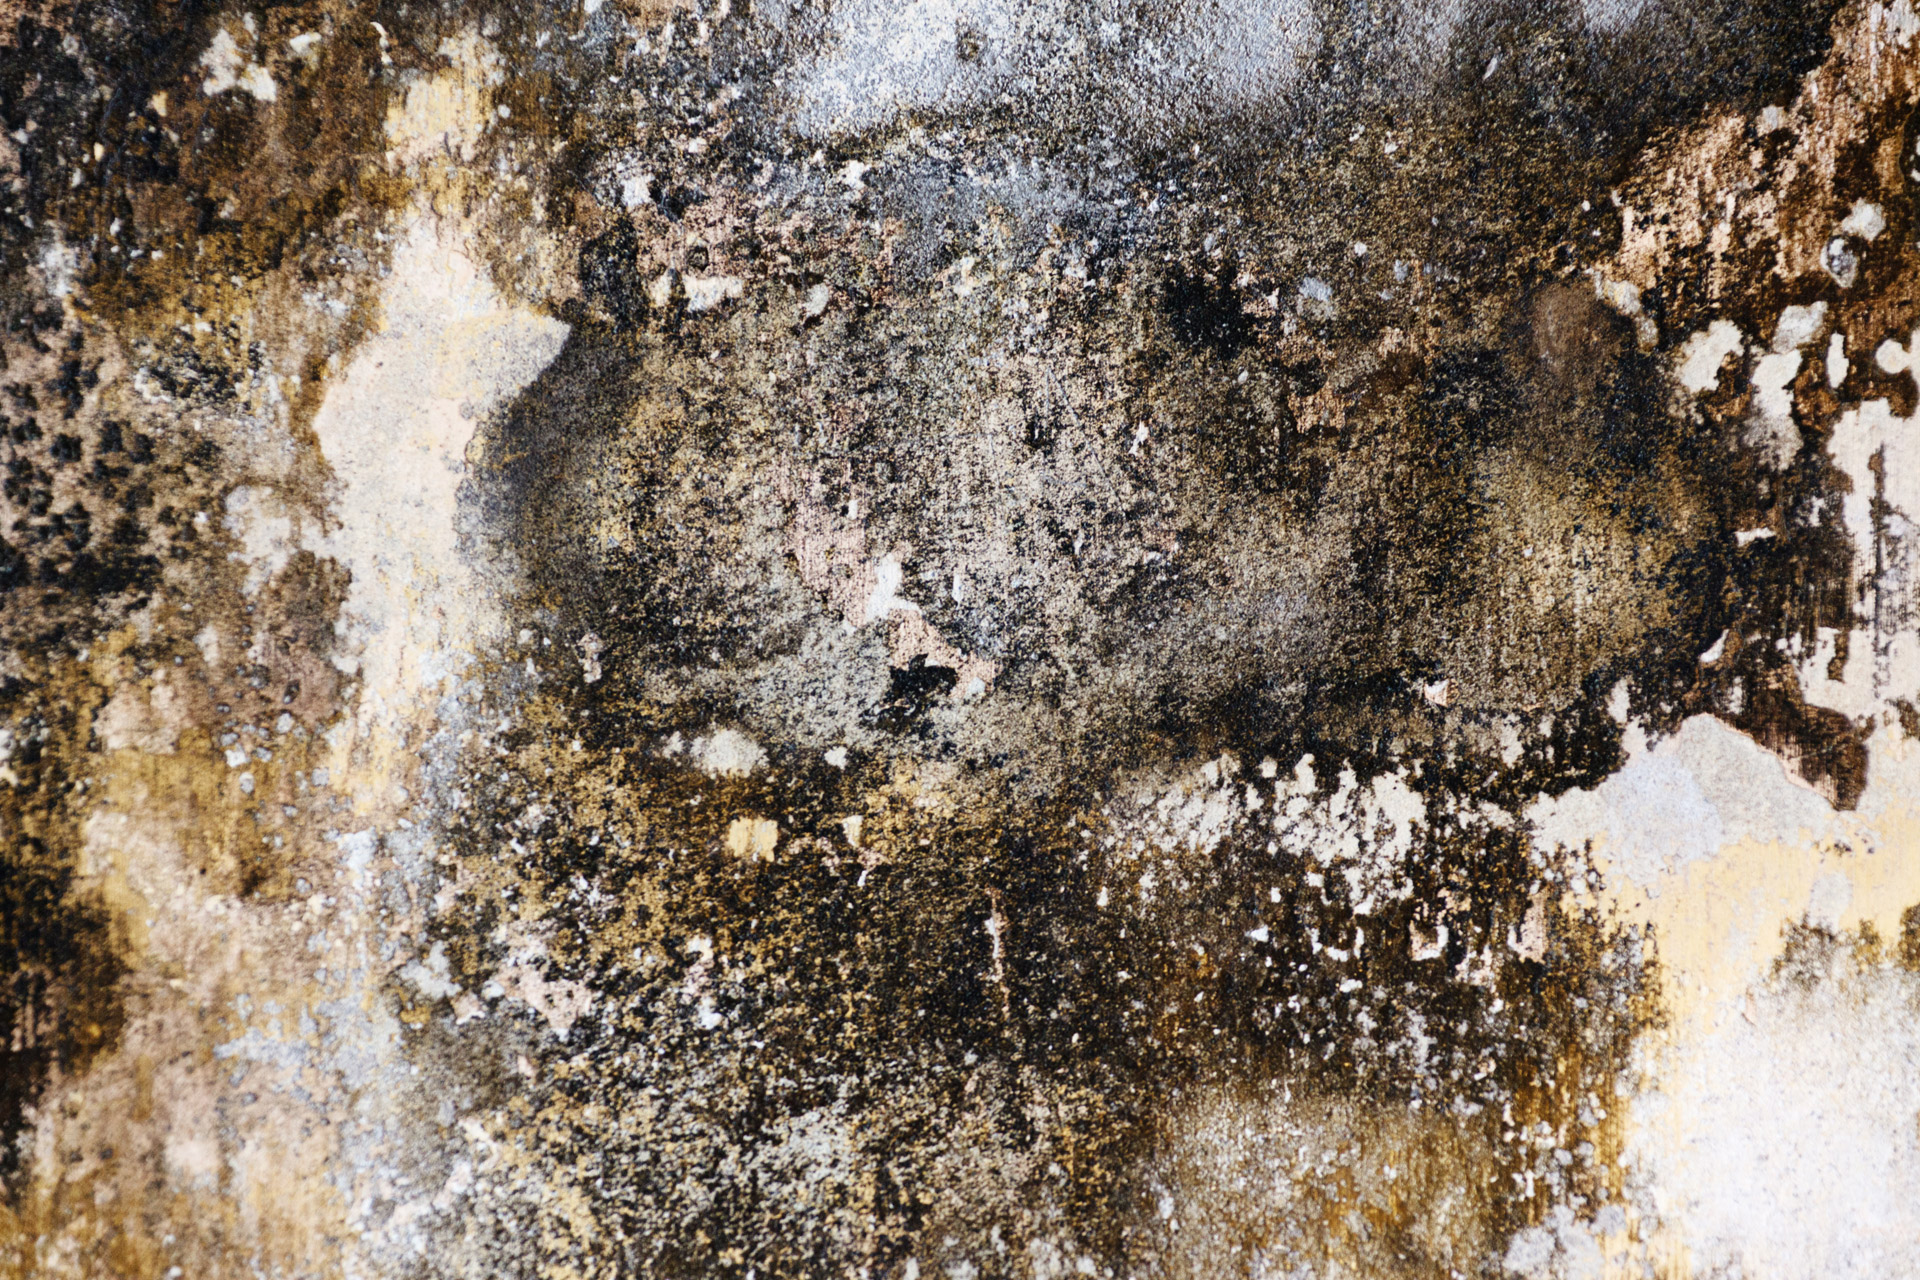 - Mold remediation is simply removing mold & mold sources from all affected surfaces/areas in your home or commercial structure. Mold can grow indoors on wet or damp surfaces, such as wallpaper, ceiling tiles, carpets, insulation material, wood and drywall. It can start to grow within 48 hours and if left unchecked, can have serious impacts on both your quality of life and your home's physical structure.If you see signs of mold or suspect that it has infected your home, we're here to help remediate the problem and prevent long-term damage.